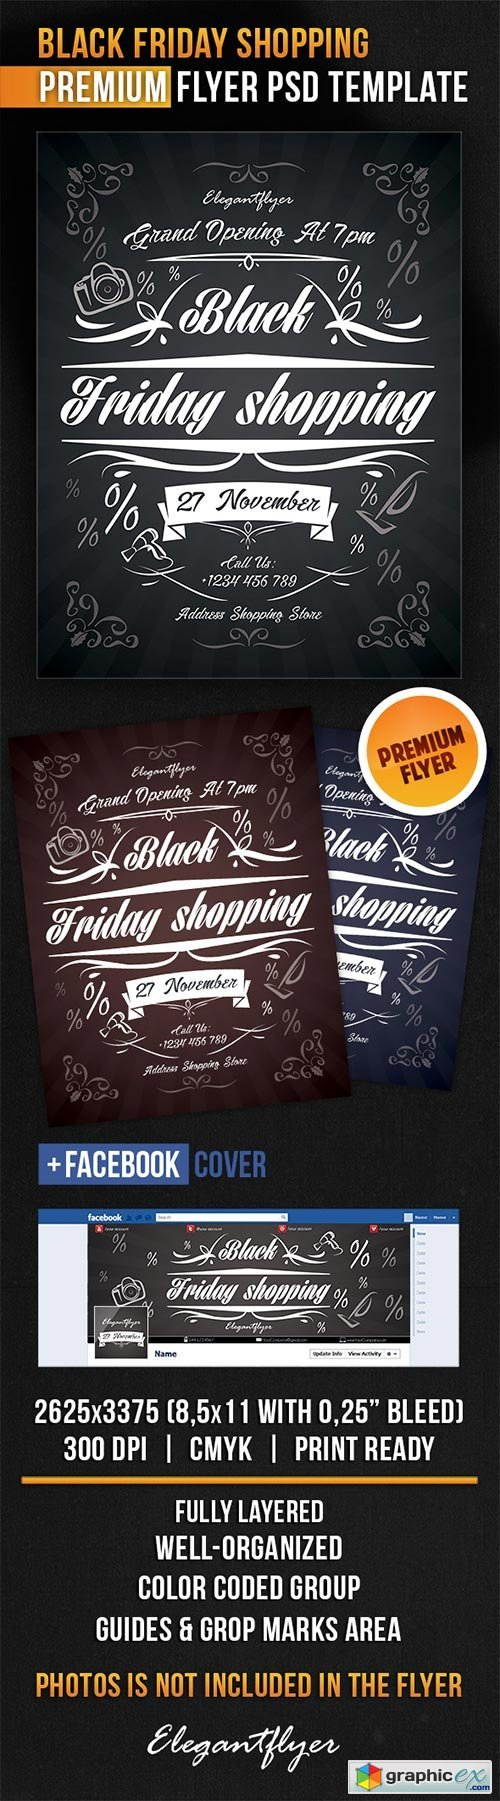 Black Friday Shopping Flyer PSD Template + Facebook Cover